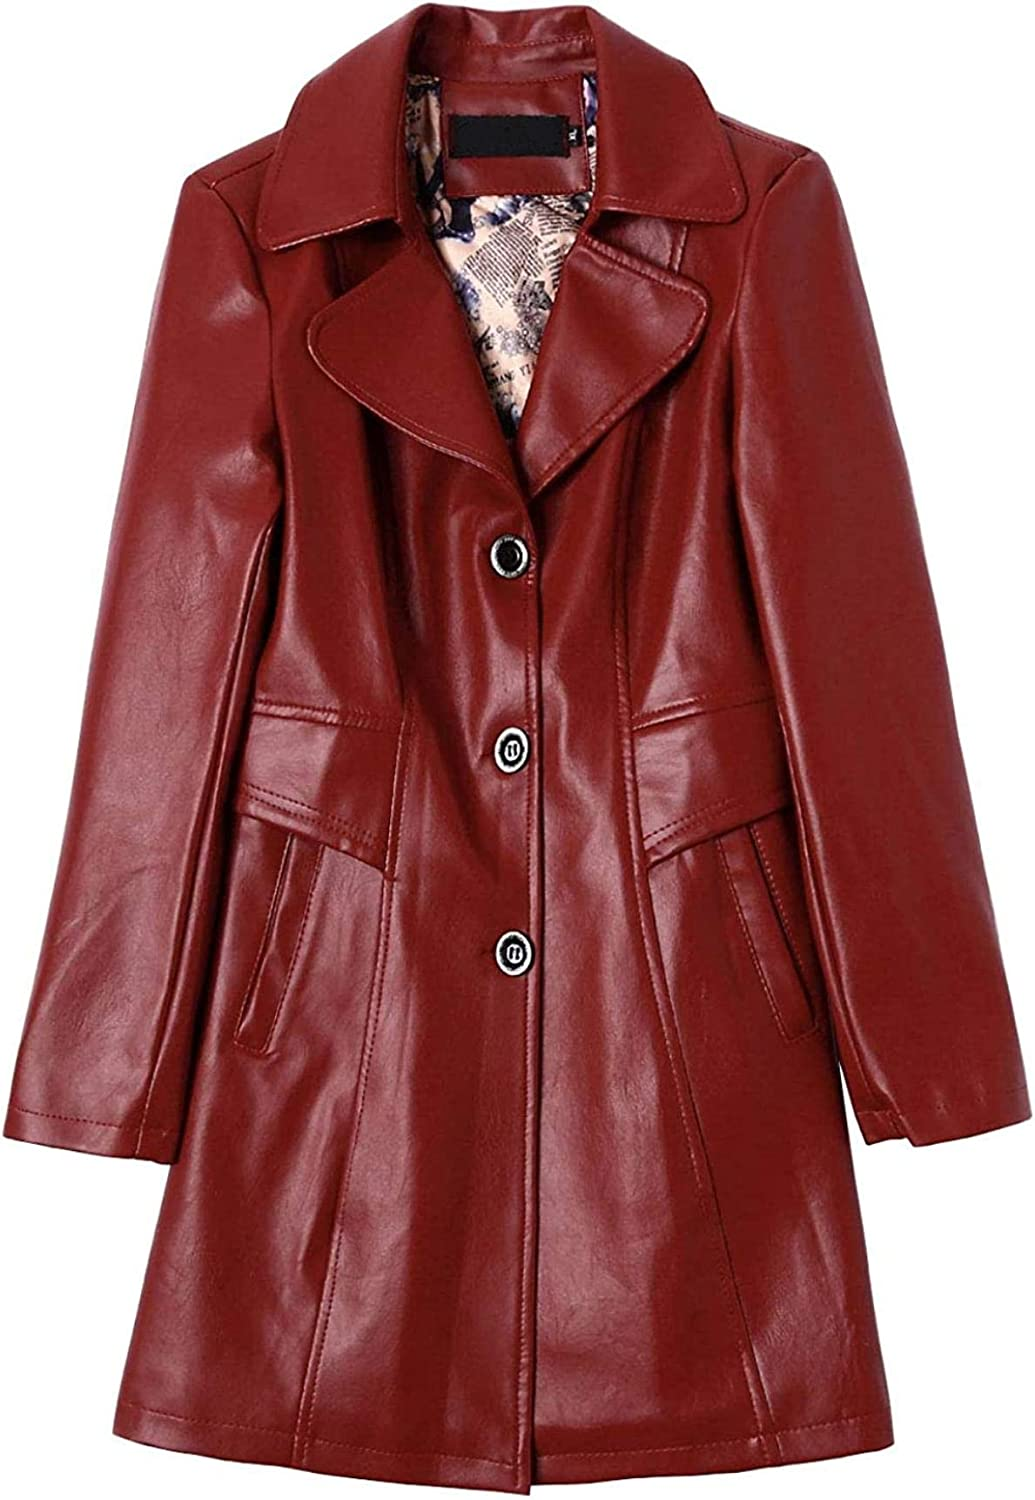 Women's Single Brested Slim Faux Leather Jacket Trench Coat